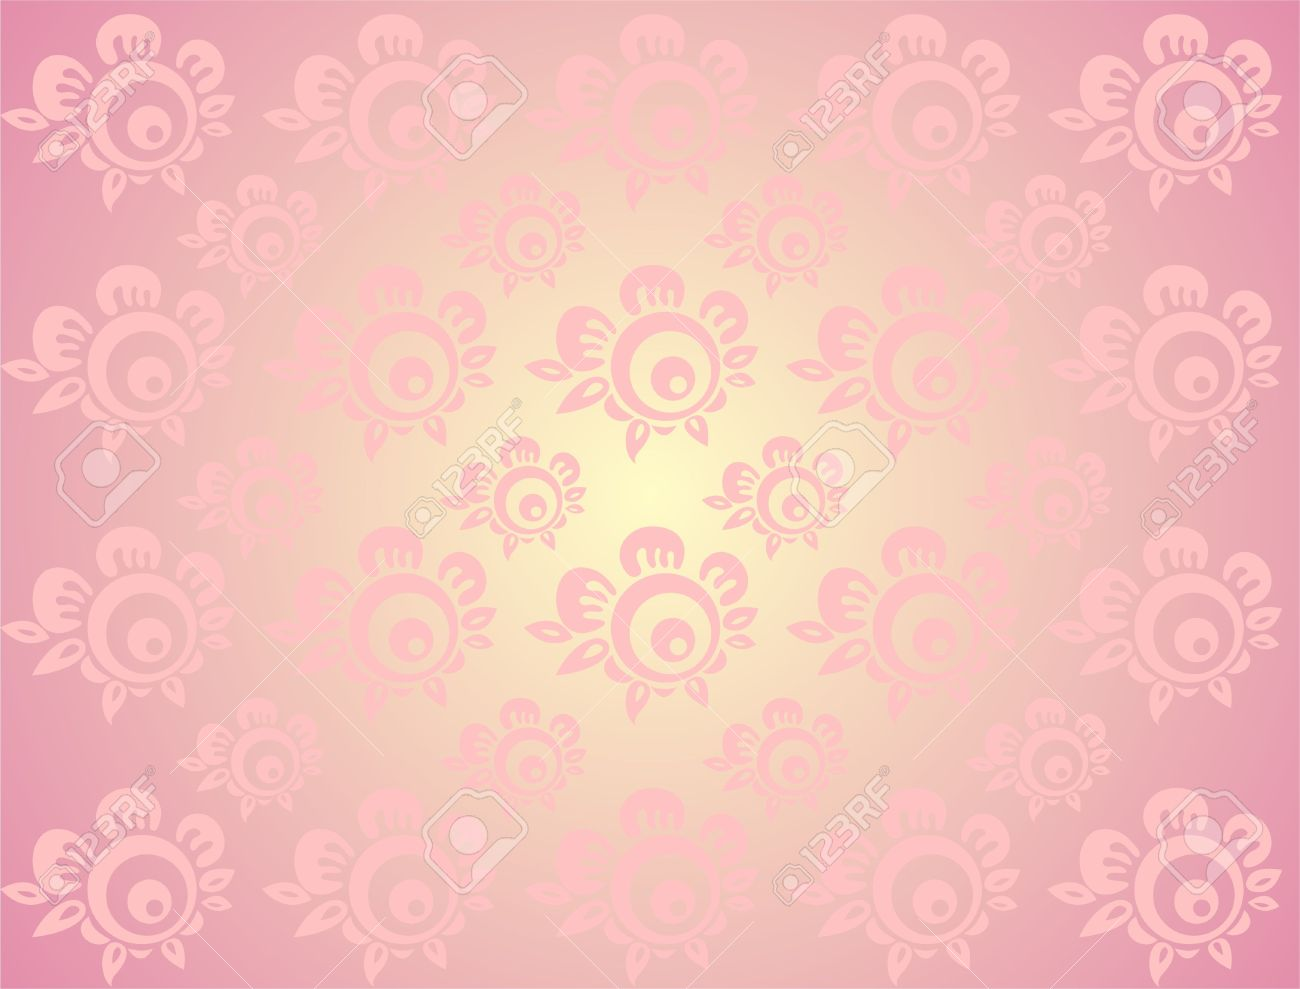 The Light Pink Stylized Flowers On A Pink Background Stock Photo